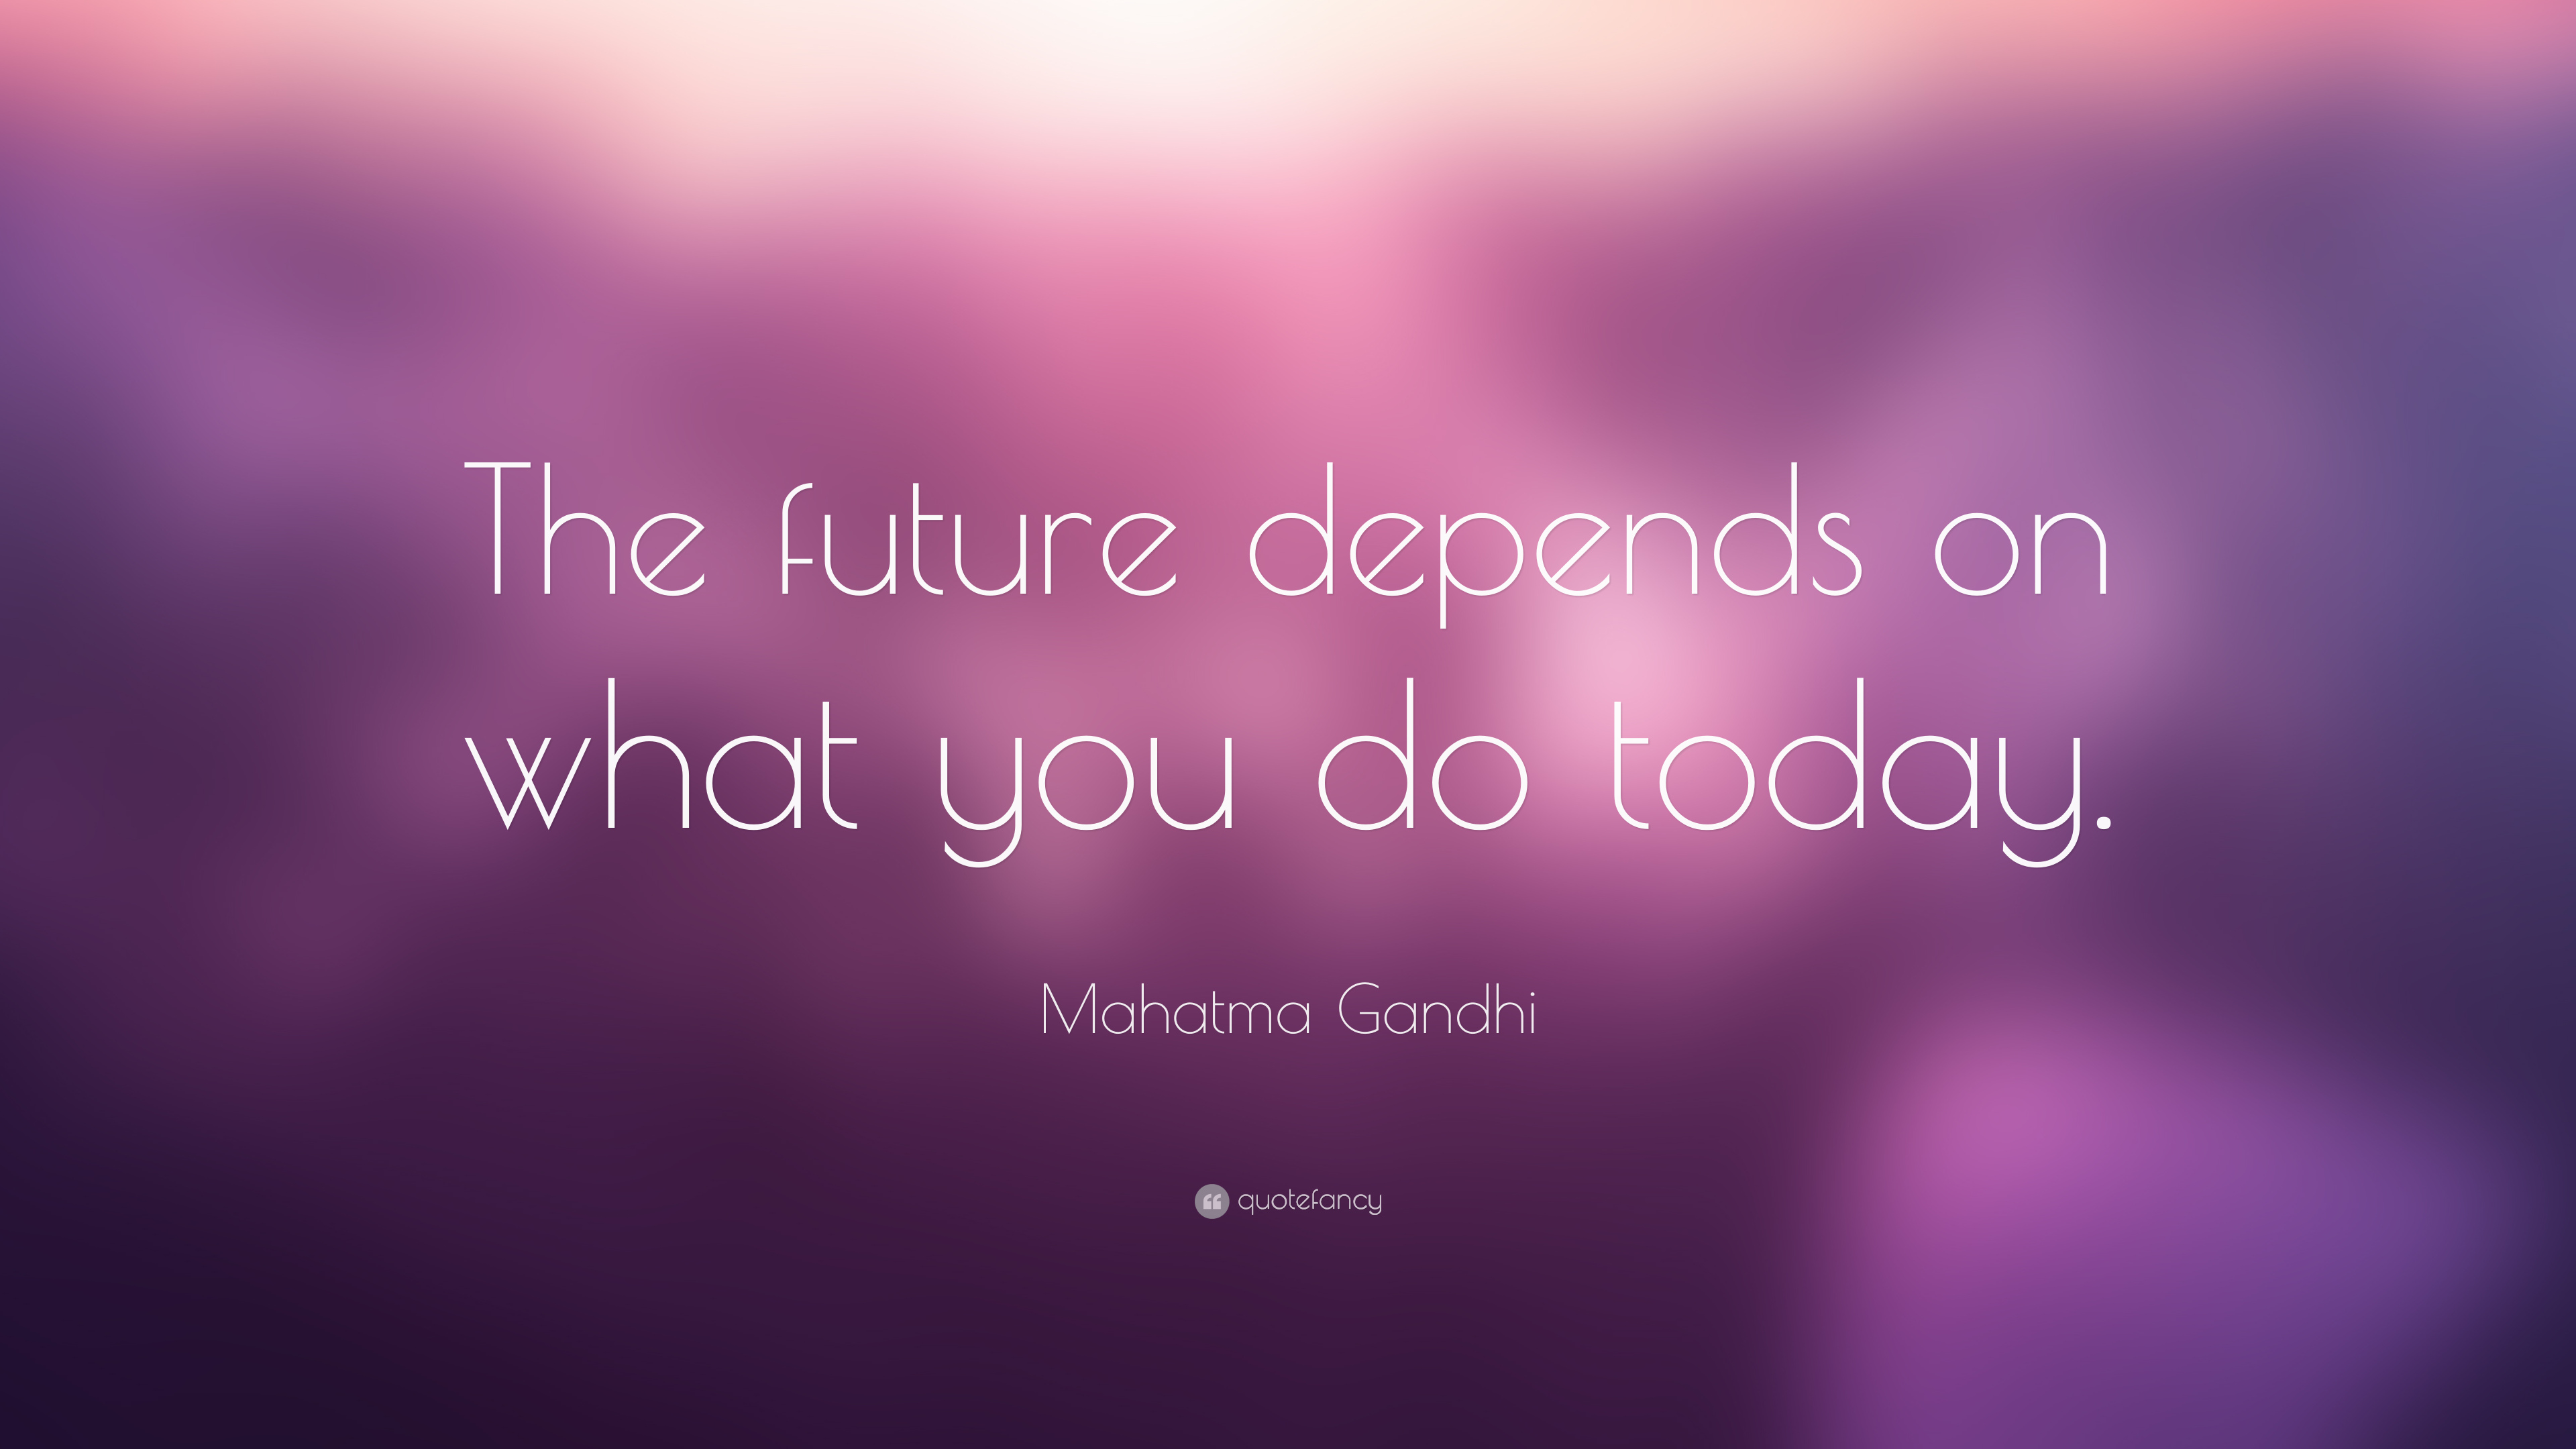 Gandhi Wallpapers With Quotes Mahatma Gandhi Quote The Future Depends On What You Do